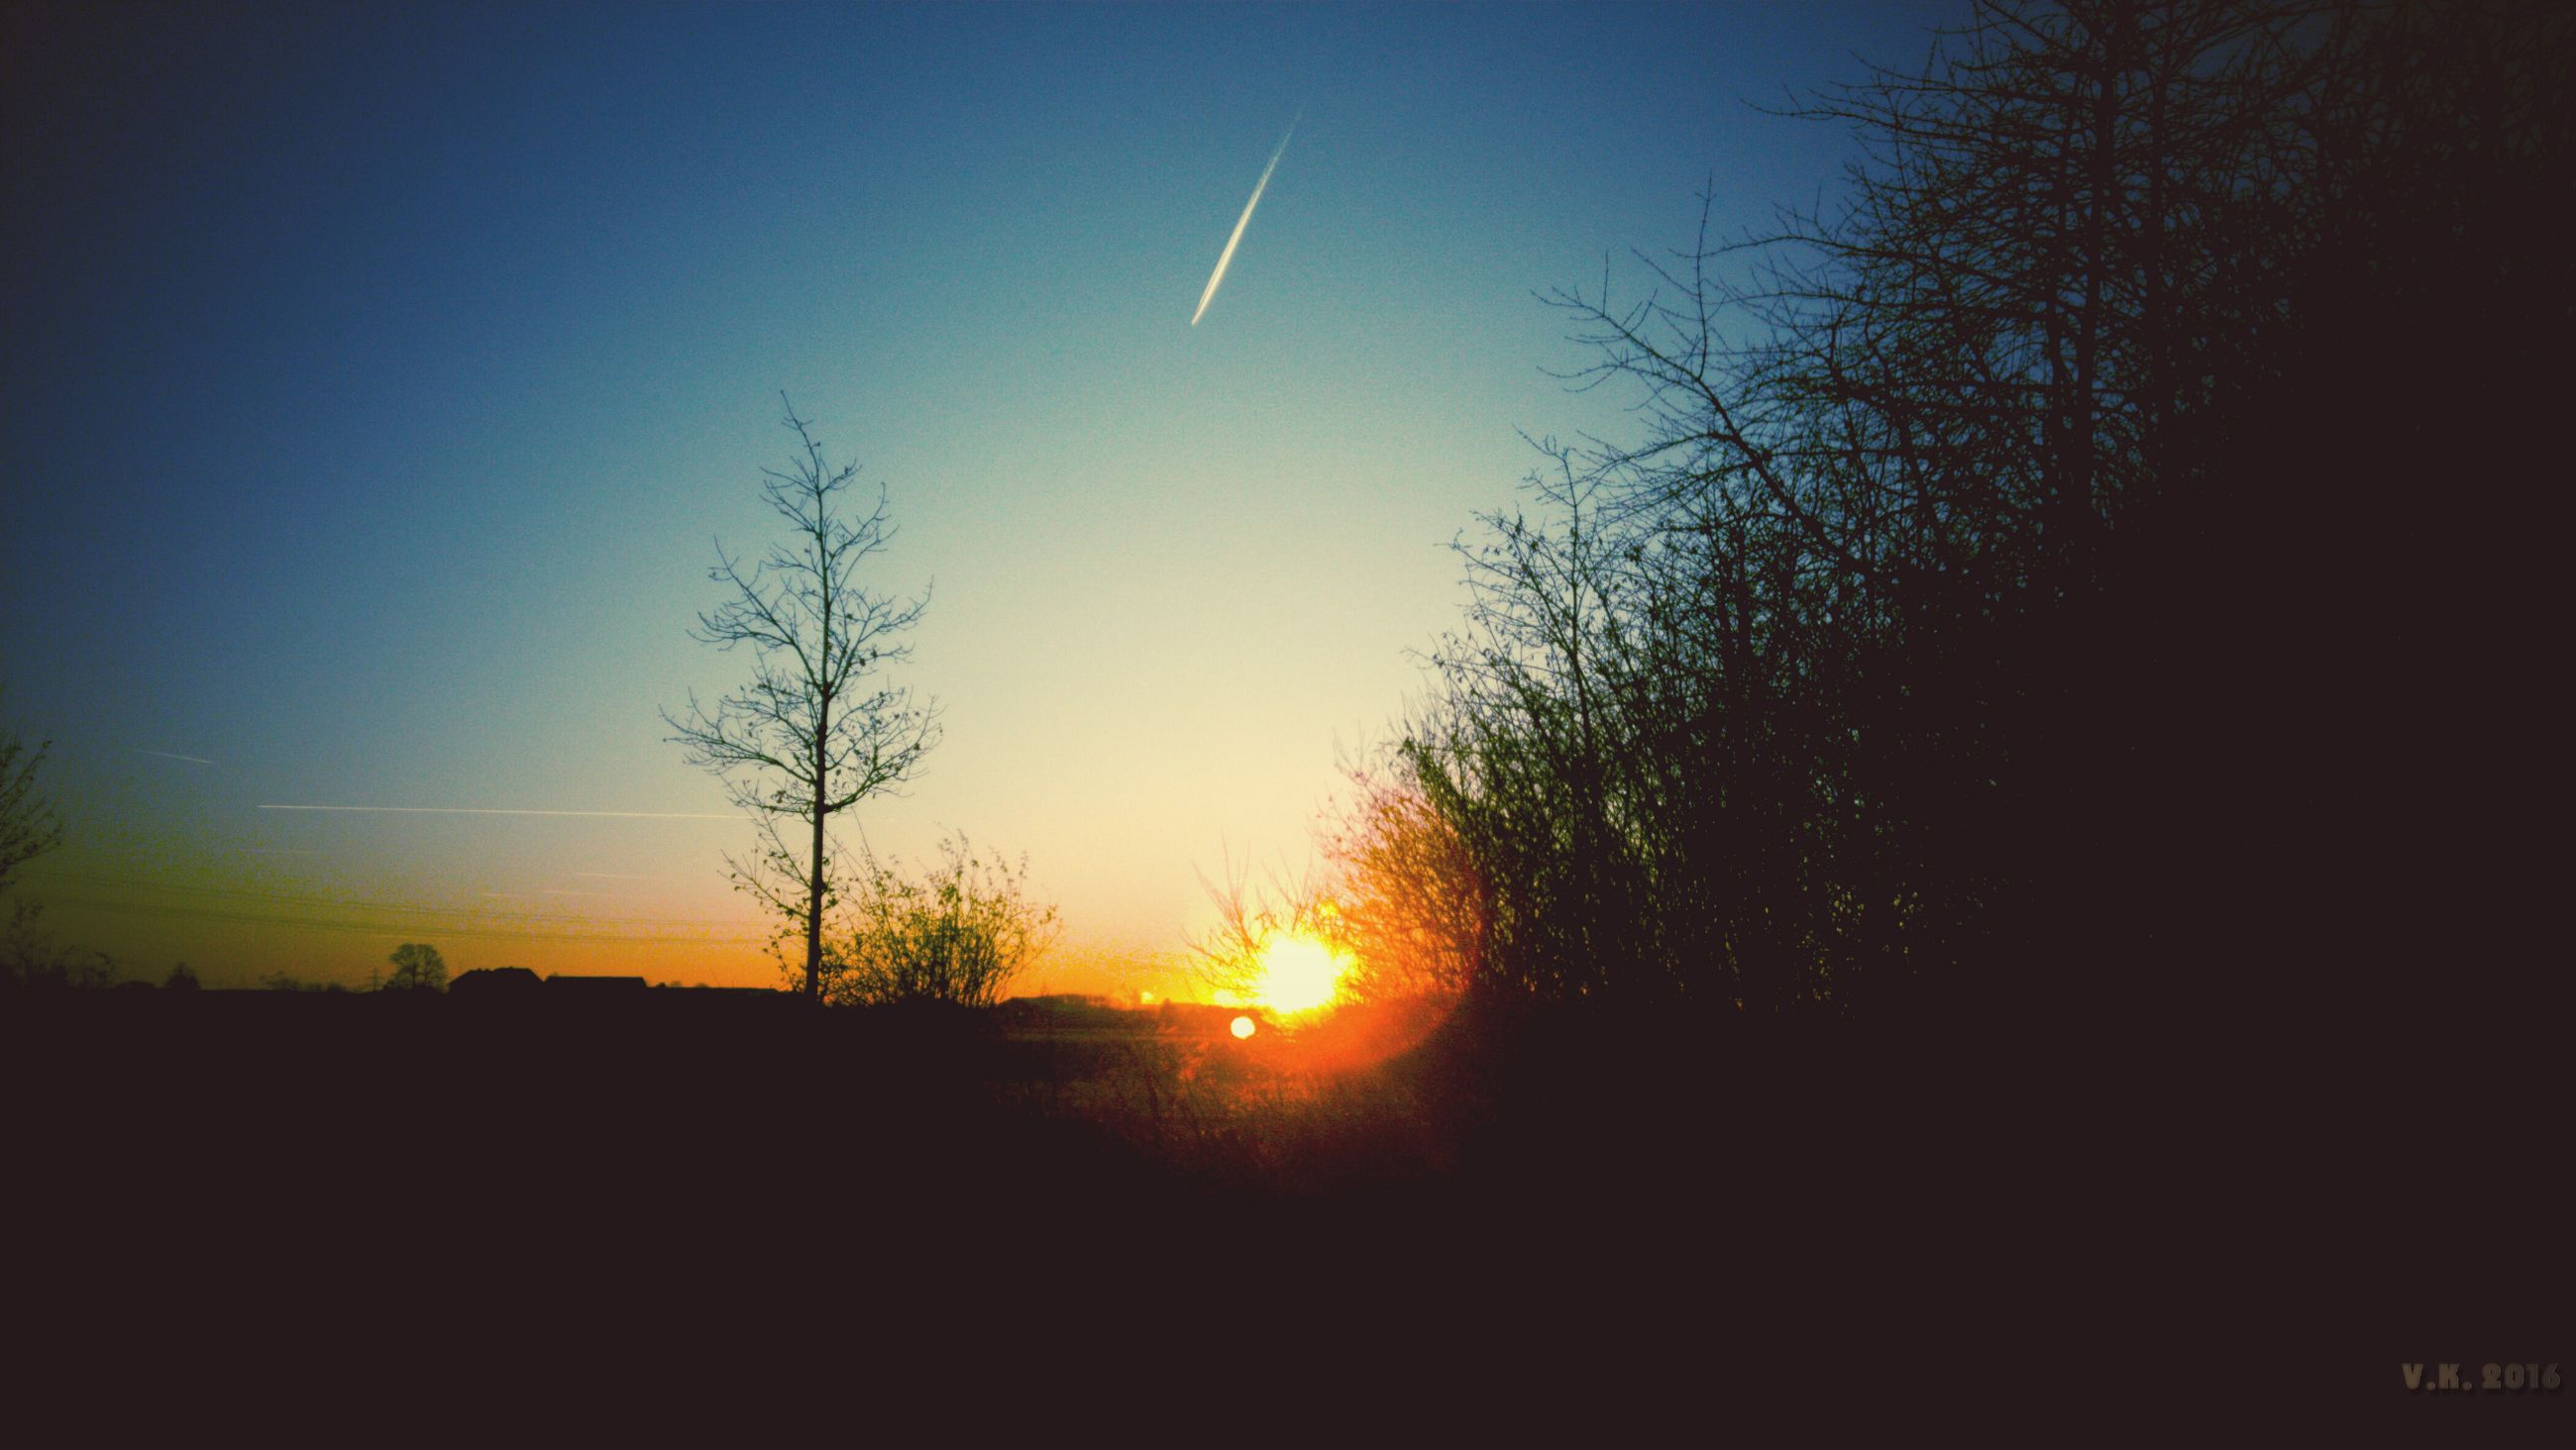 sunset, silhouette, beauty in nature, nature, scenics, tranquil scene, tranquility, no people, sun, tree, sky, outdoors, day